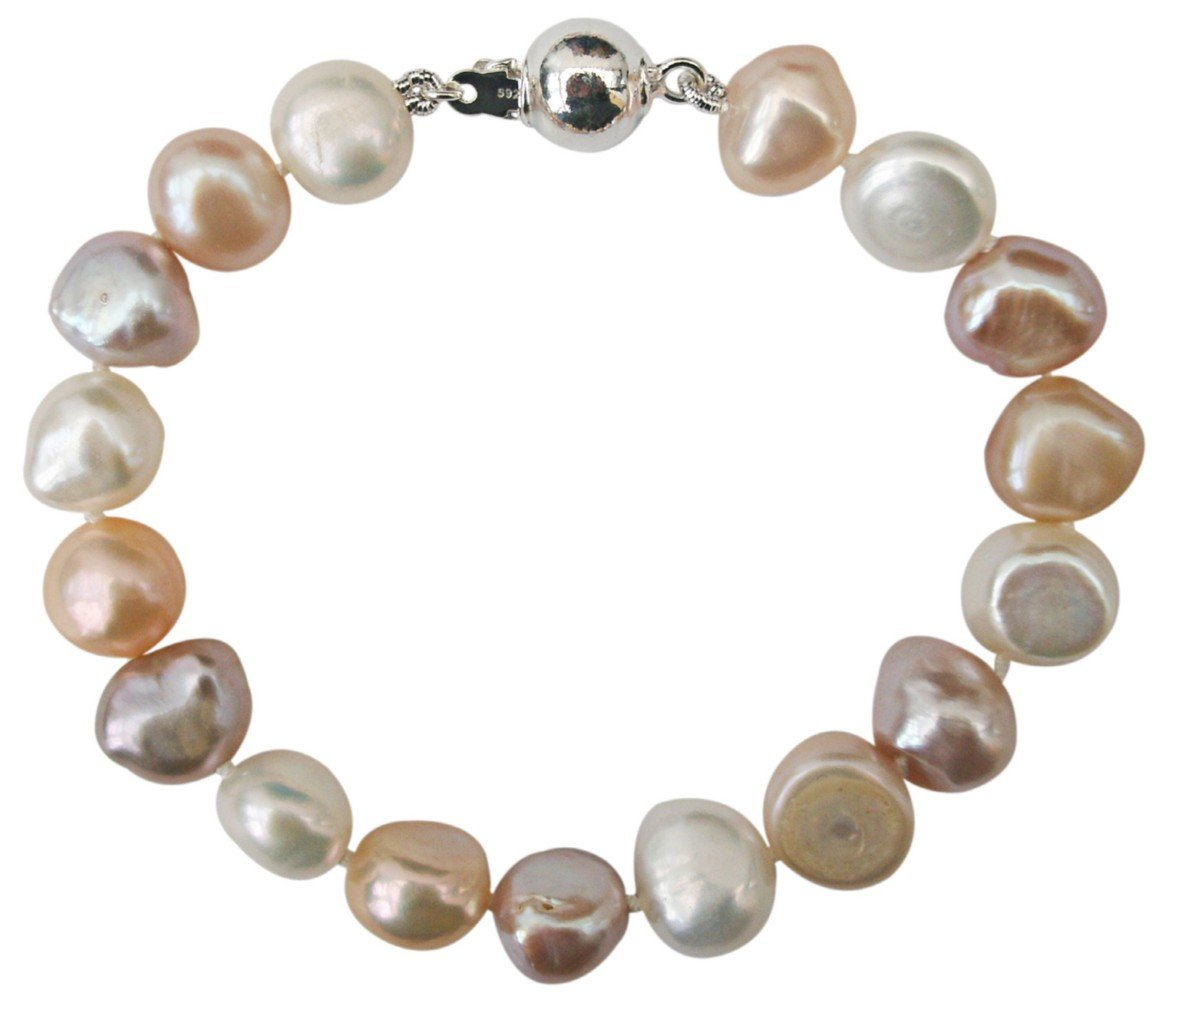 Bridesmaid Soft Peach/Lilac/White 9-10mm Baroque Cultured Pearl Bracelet With A Pretty Sterling Silver Ball Clasp, 15Cm